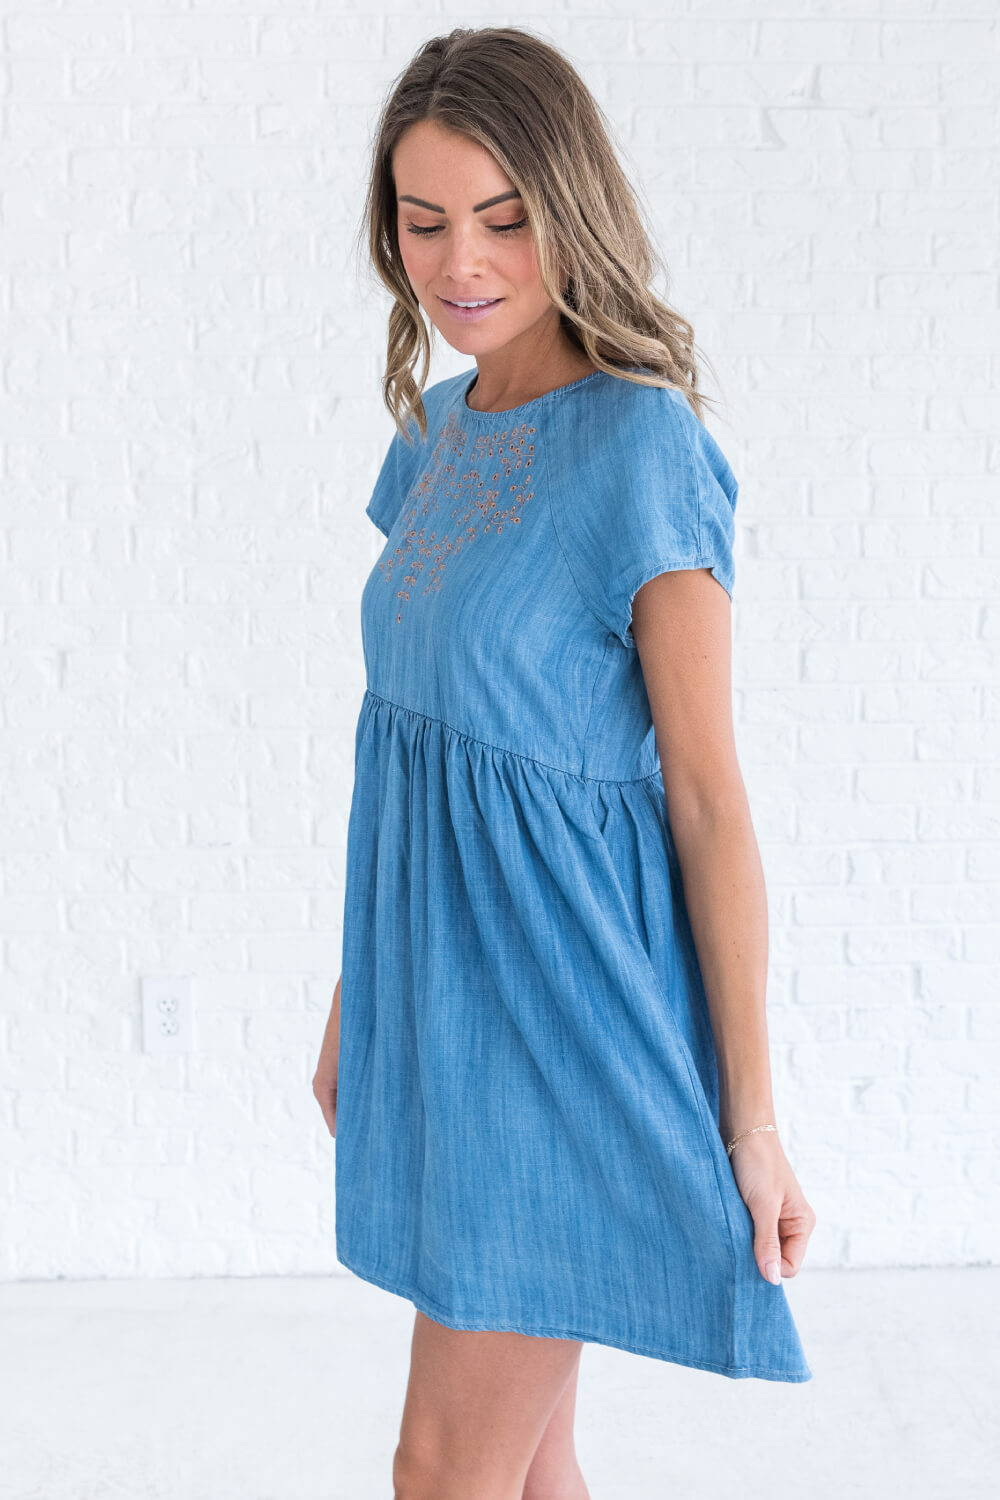 Summer Reading List 2018 blue denim dress